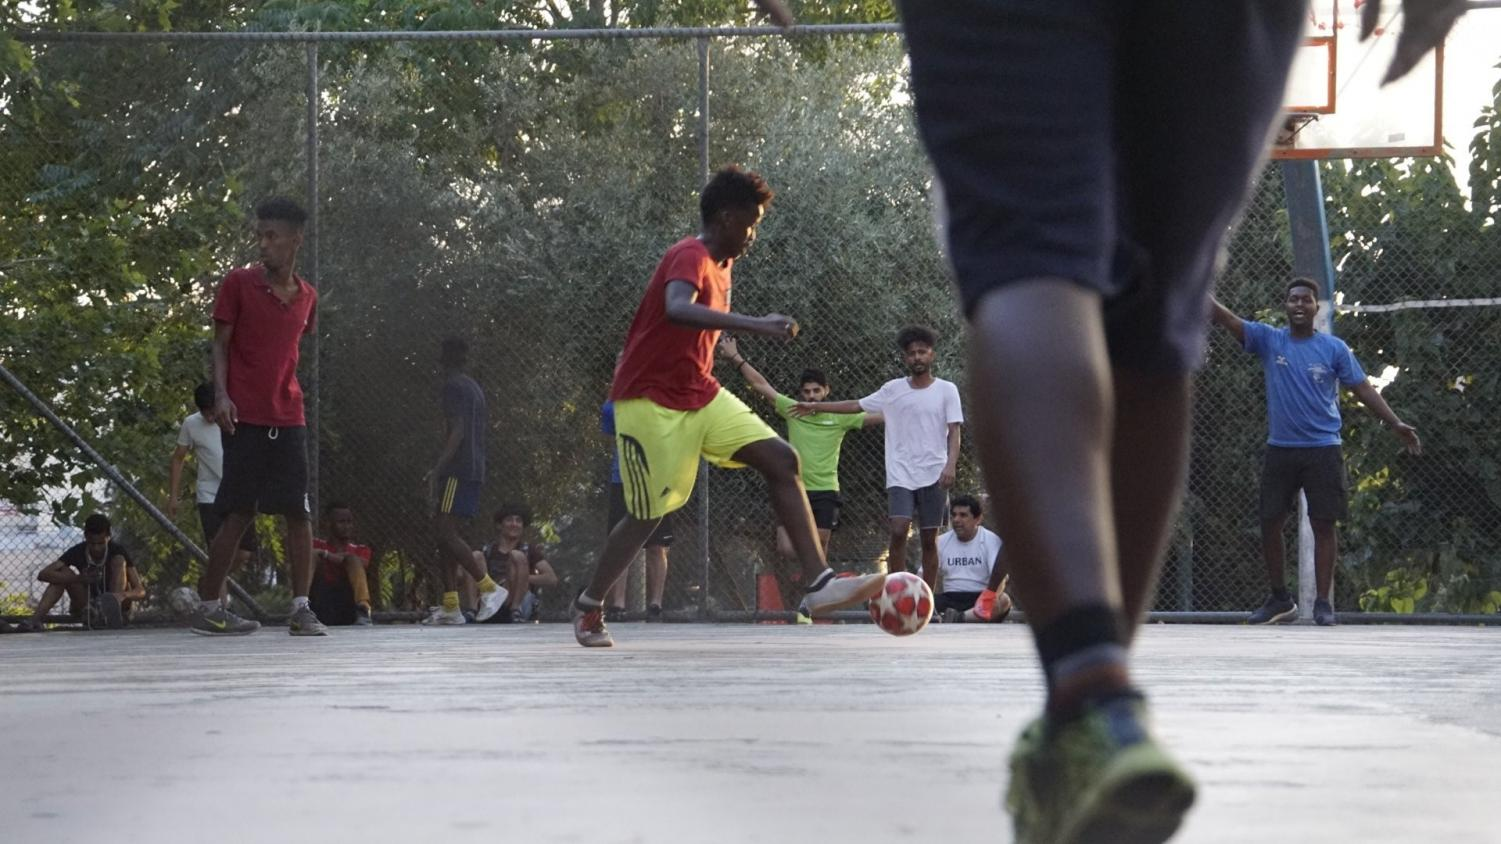 Plenty of spectators watch a court soccer match at Larrisa Station Park in Athens, Greece on June, 25, 2019.  This man stood out to the crowd with his athleticism,